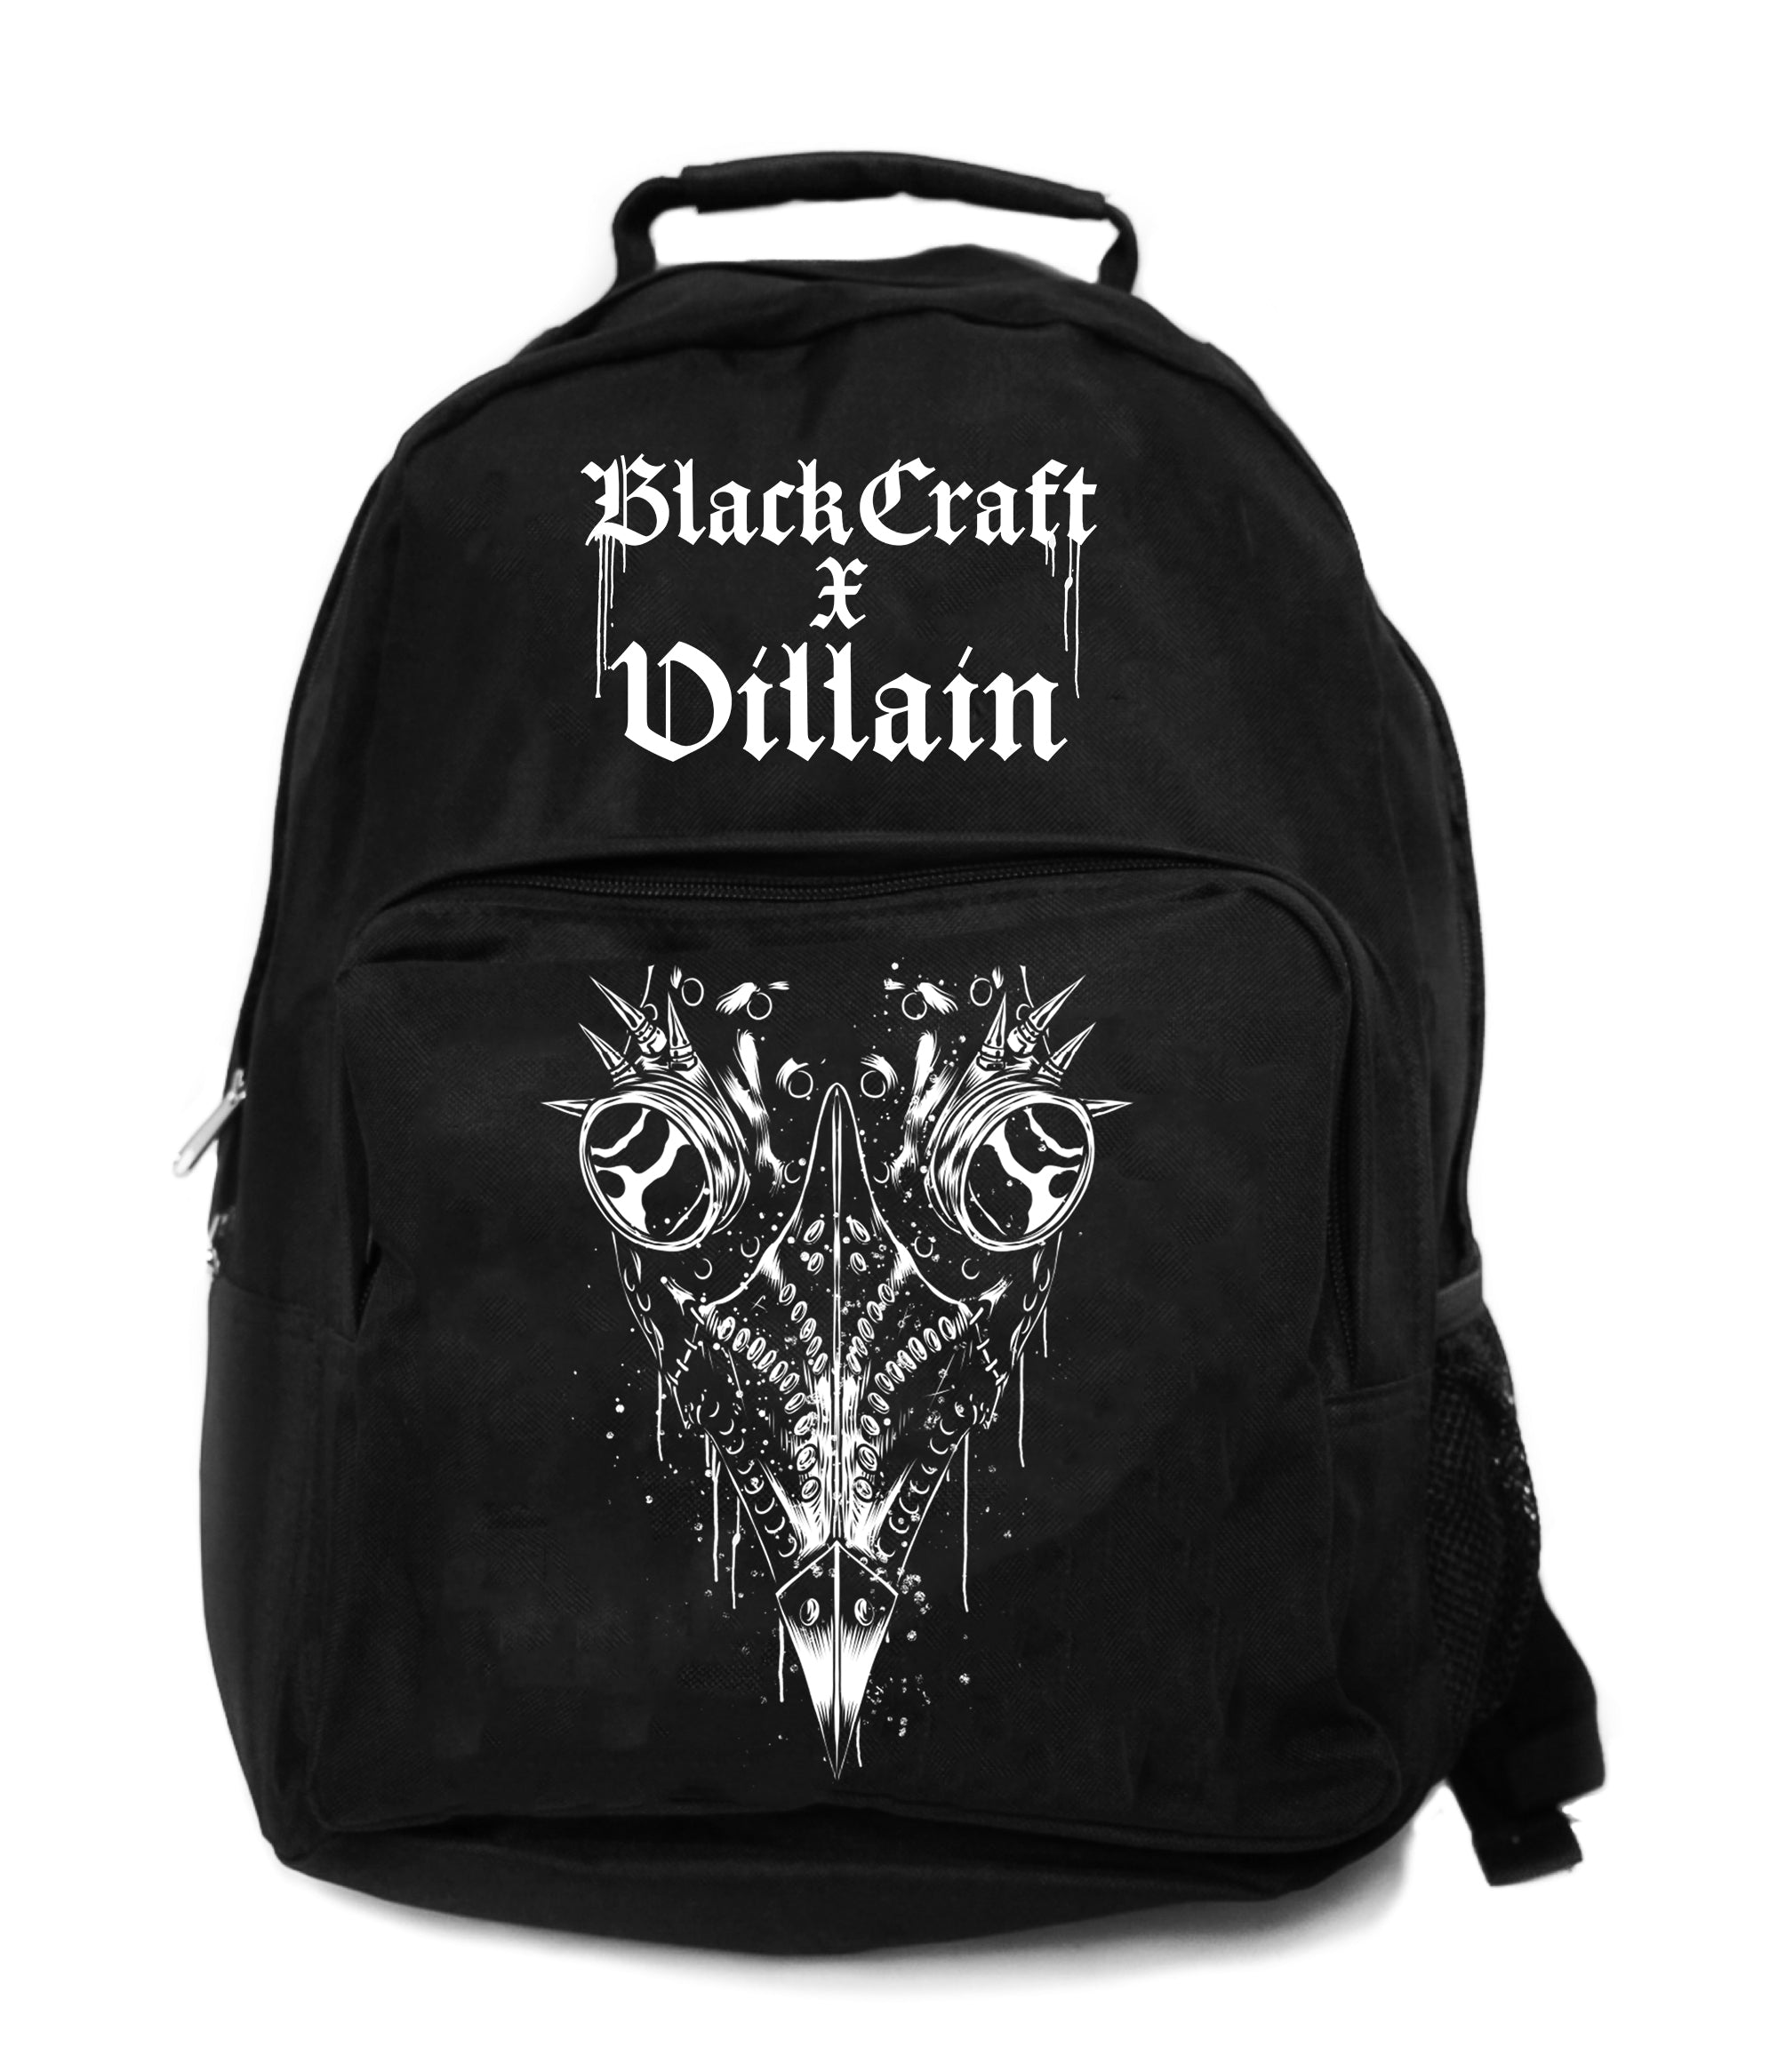 Blackcraft x Villain - Commuter Backpack